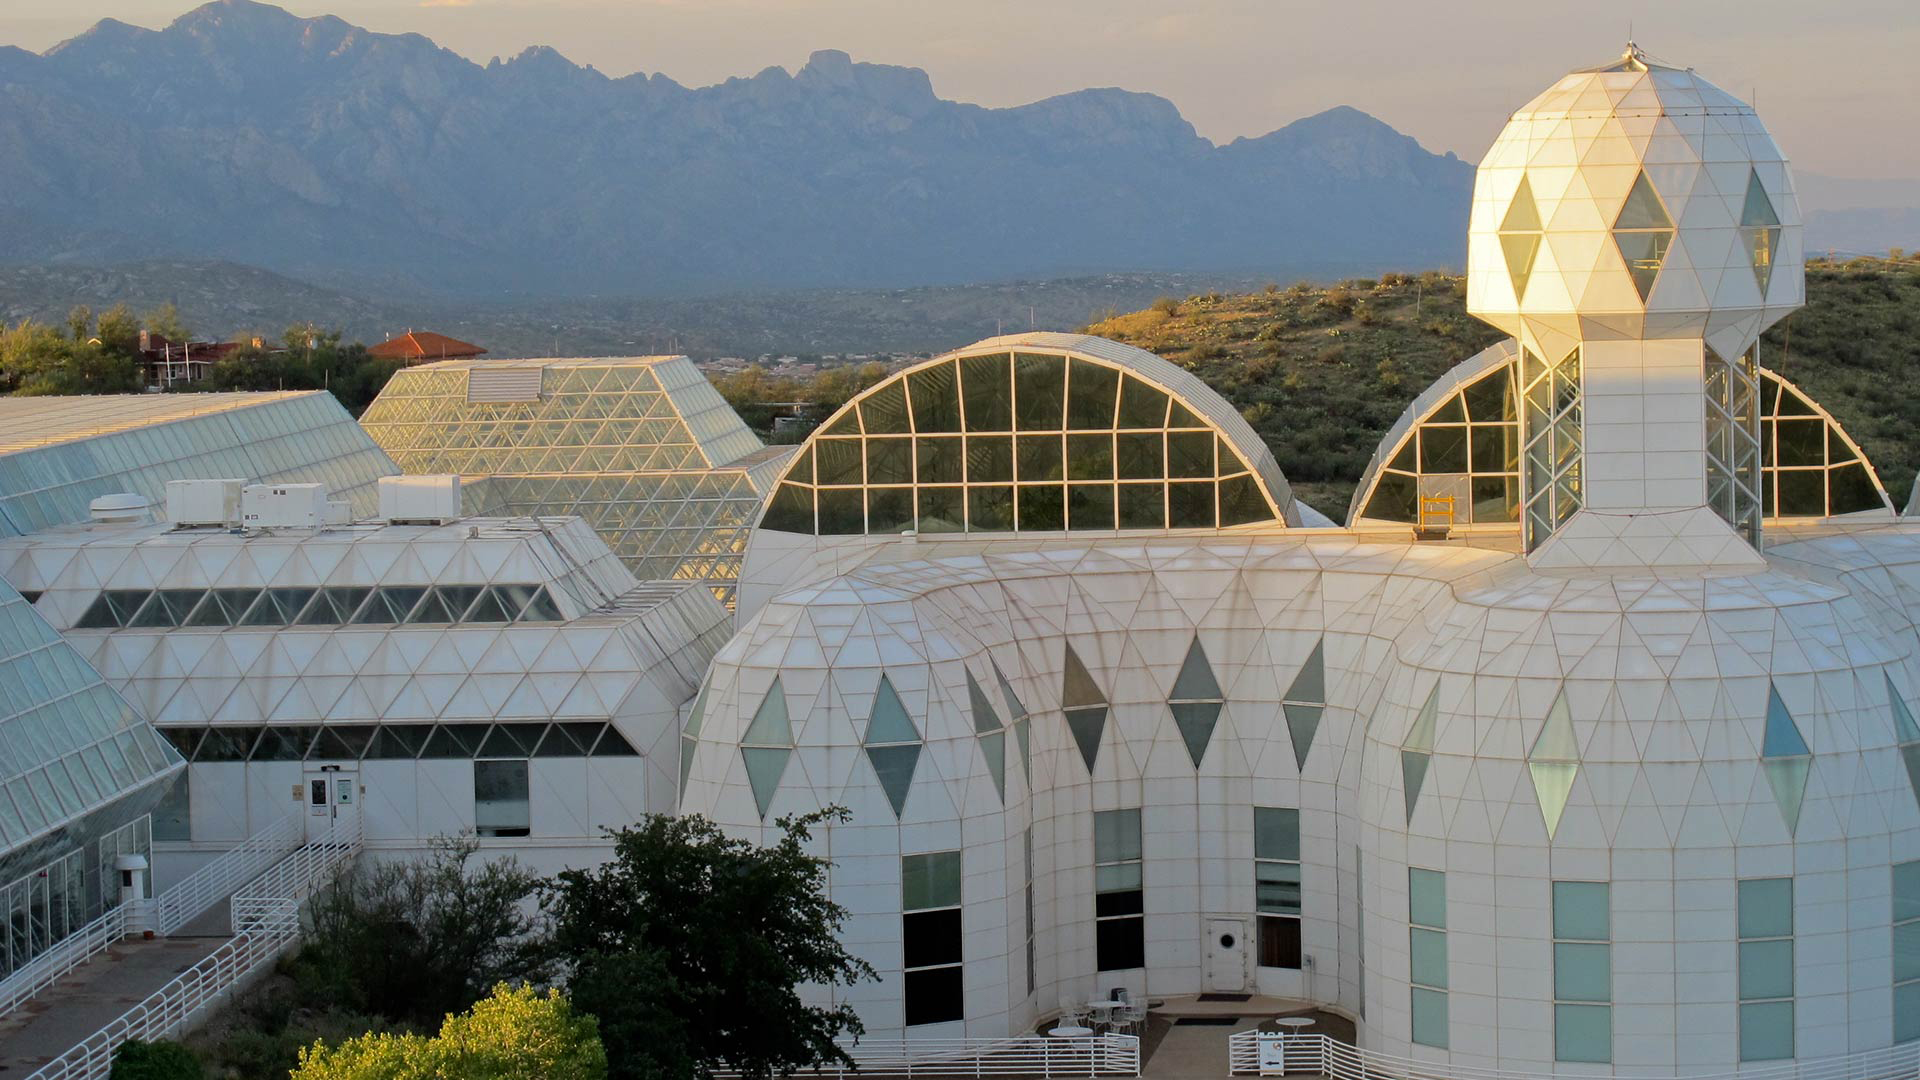 Former UA College of Sciences dean Joaquin Ruiz lists the acquisition of Biosphere 2 among the College's top moments during his 20 years of leadership.